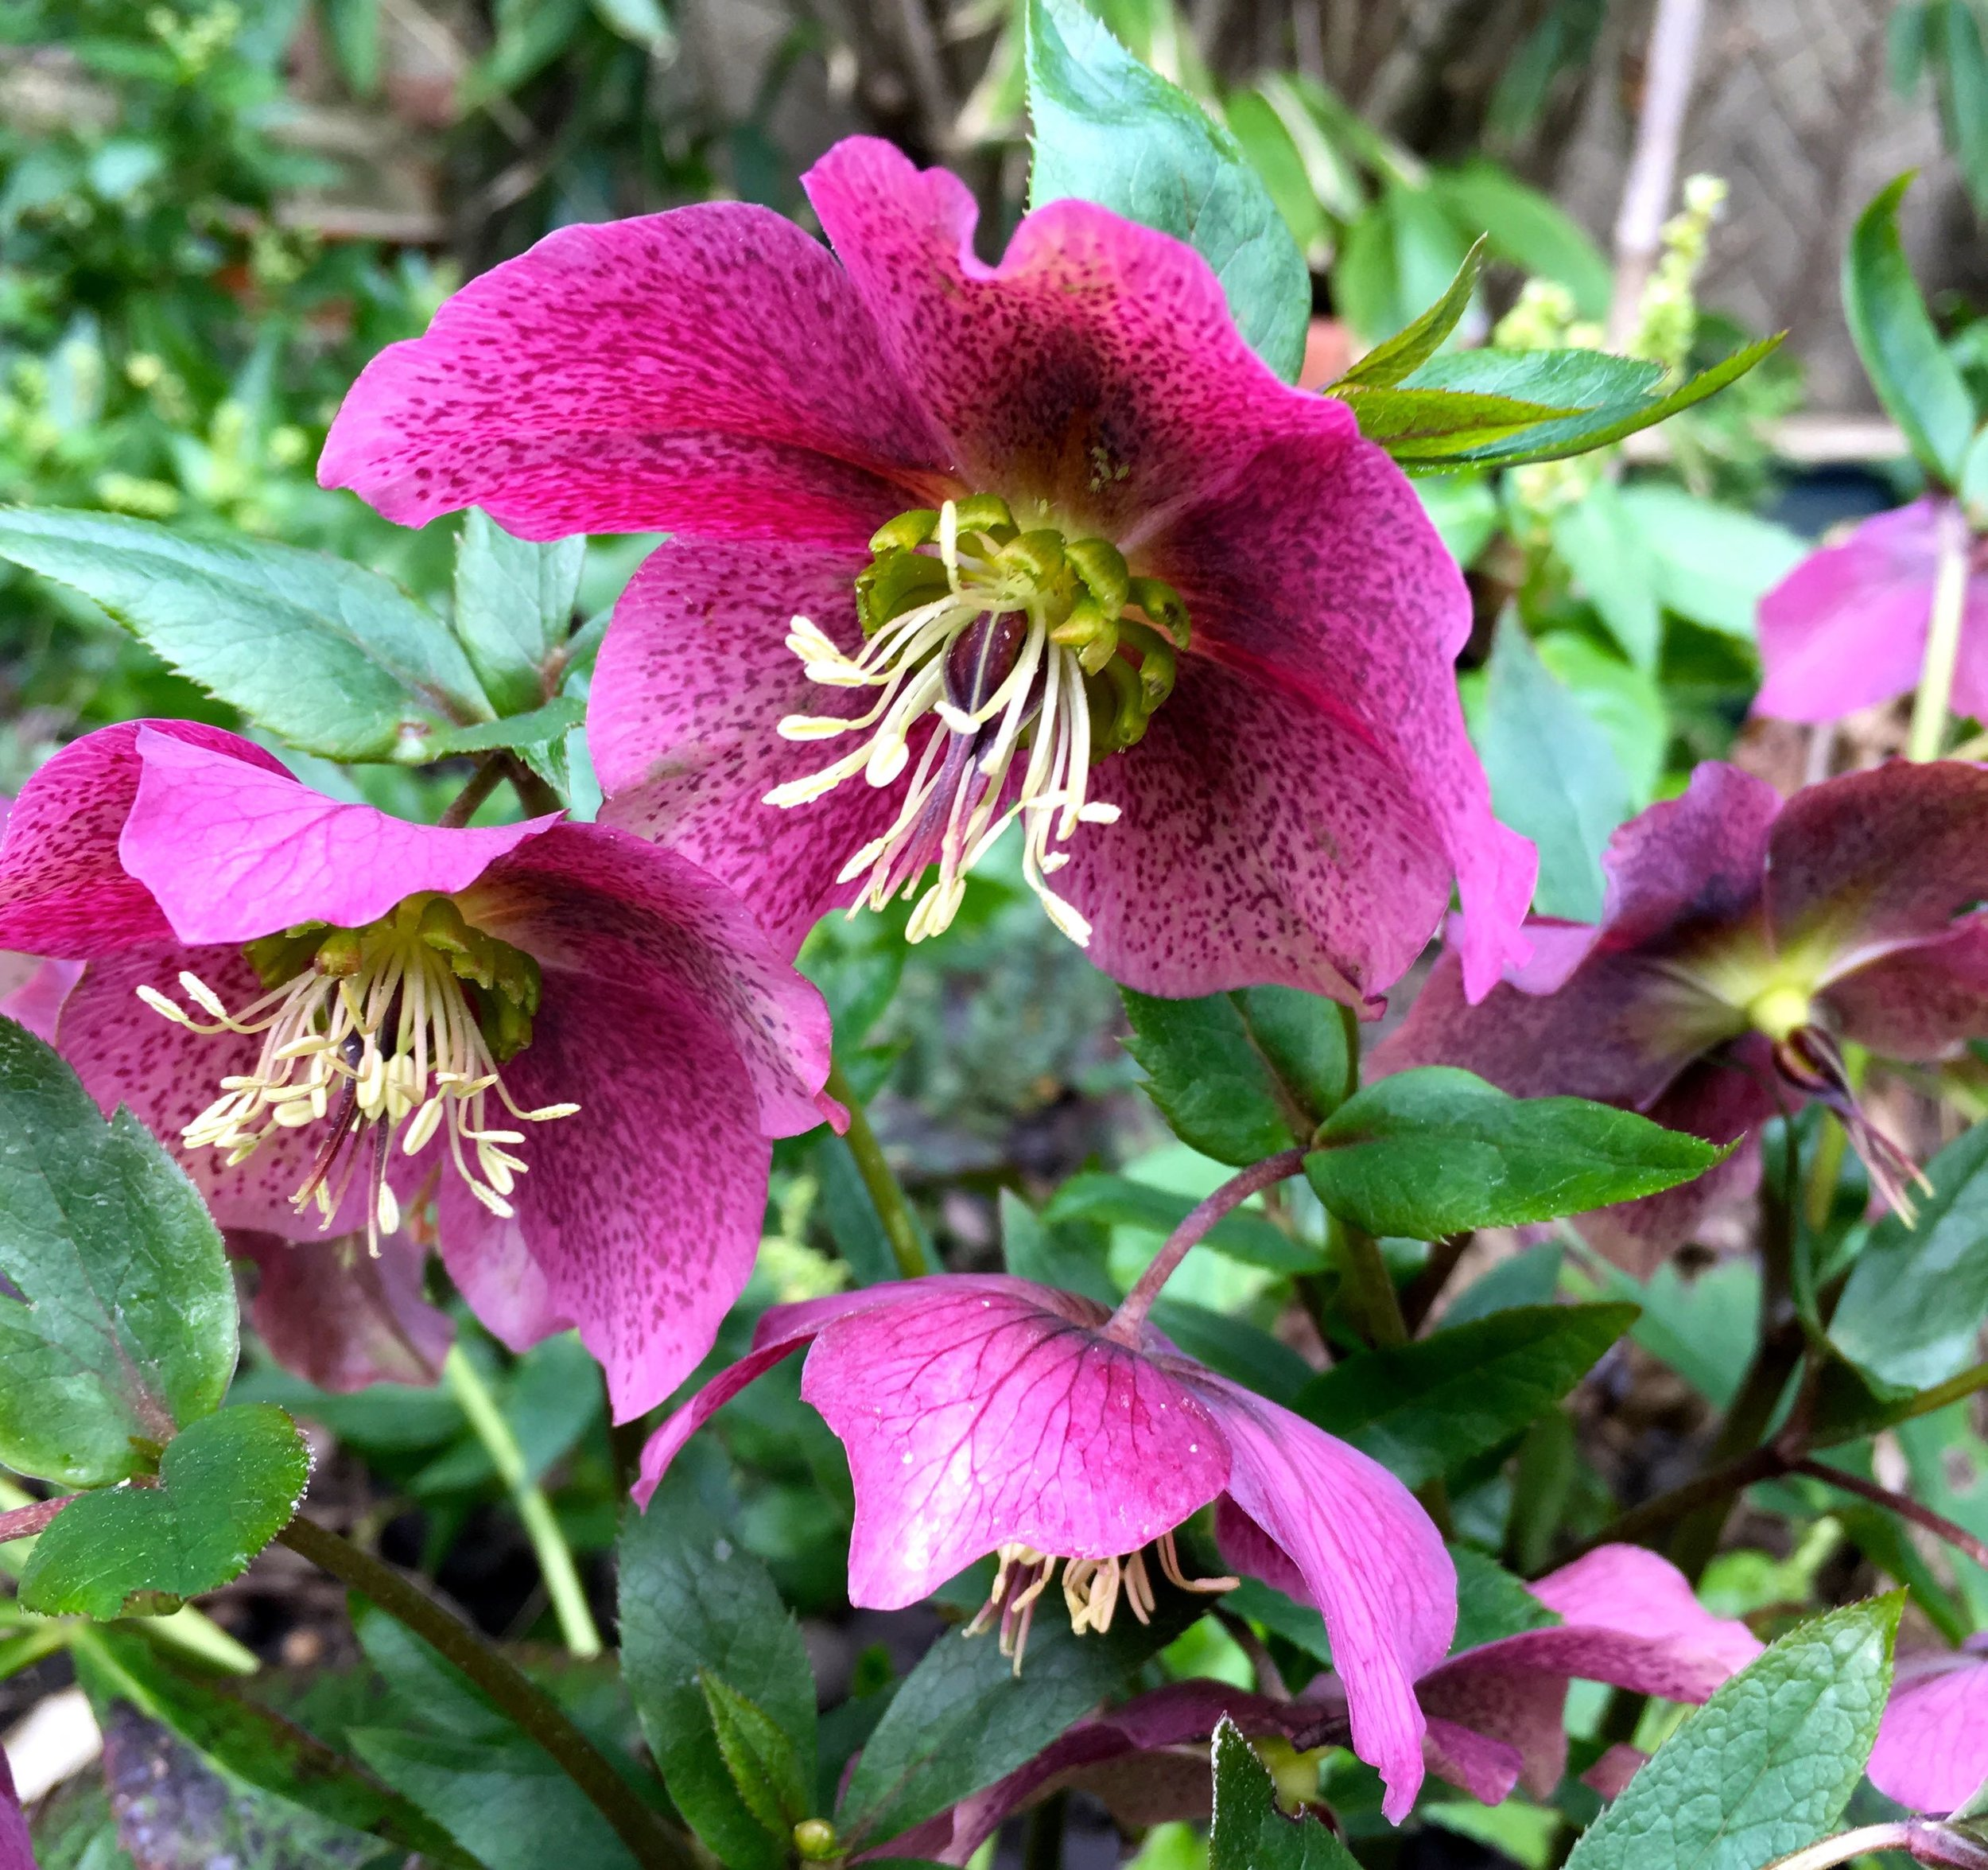 The star of the show in my garden right now is hellebores